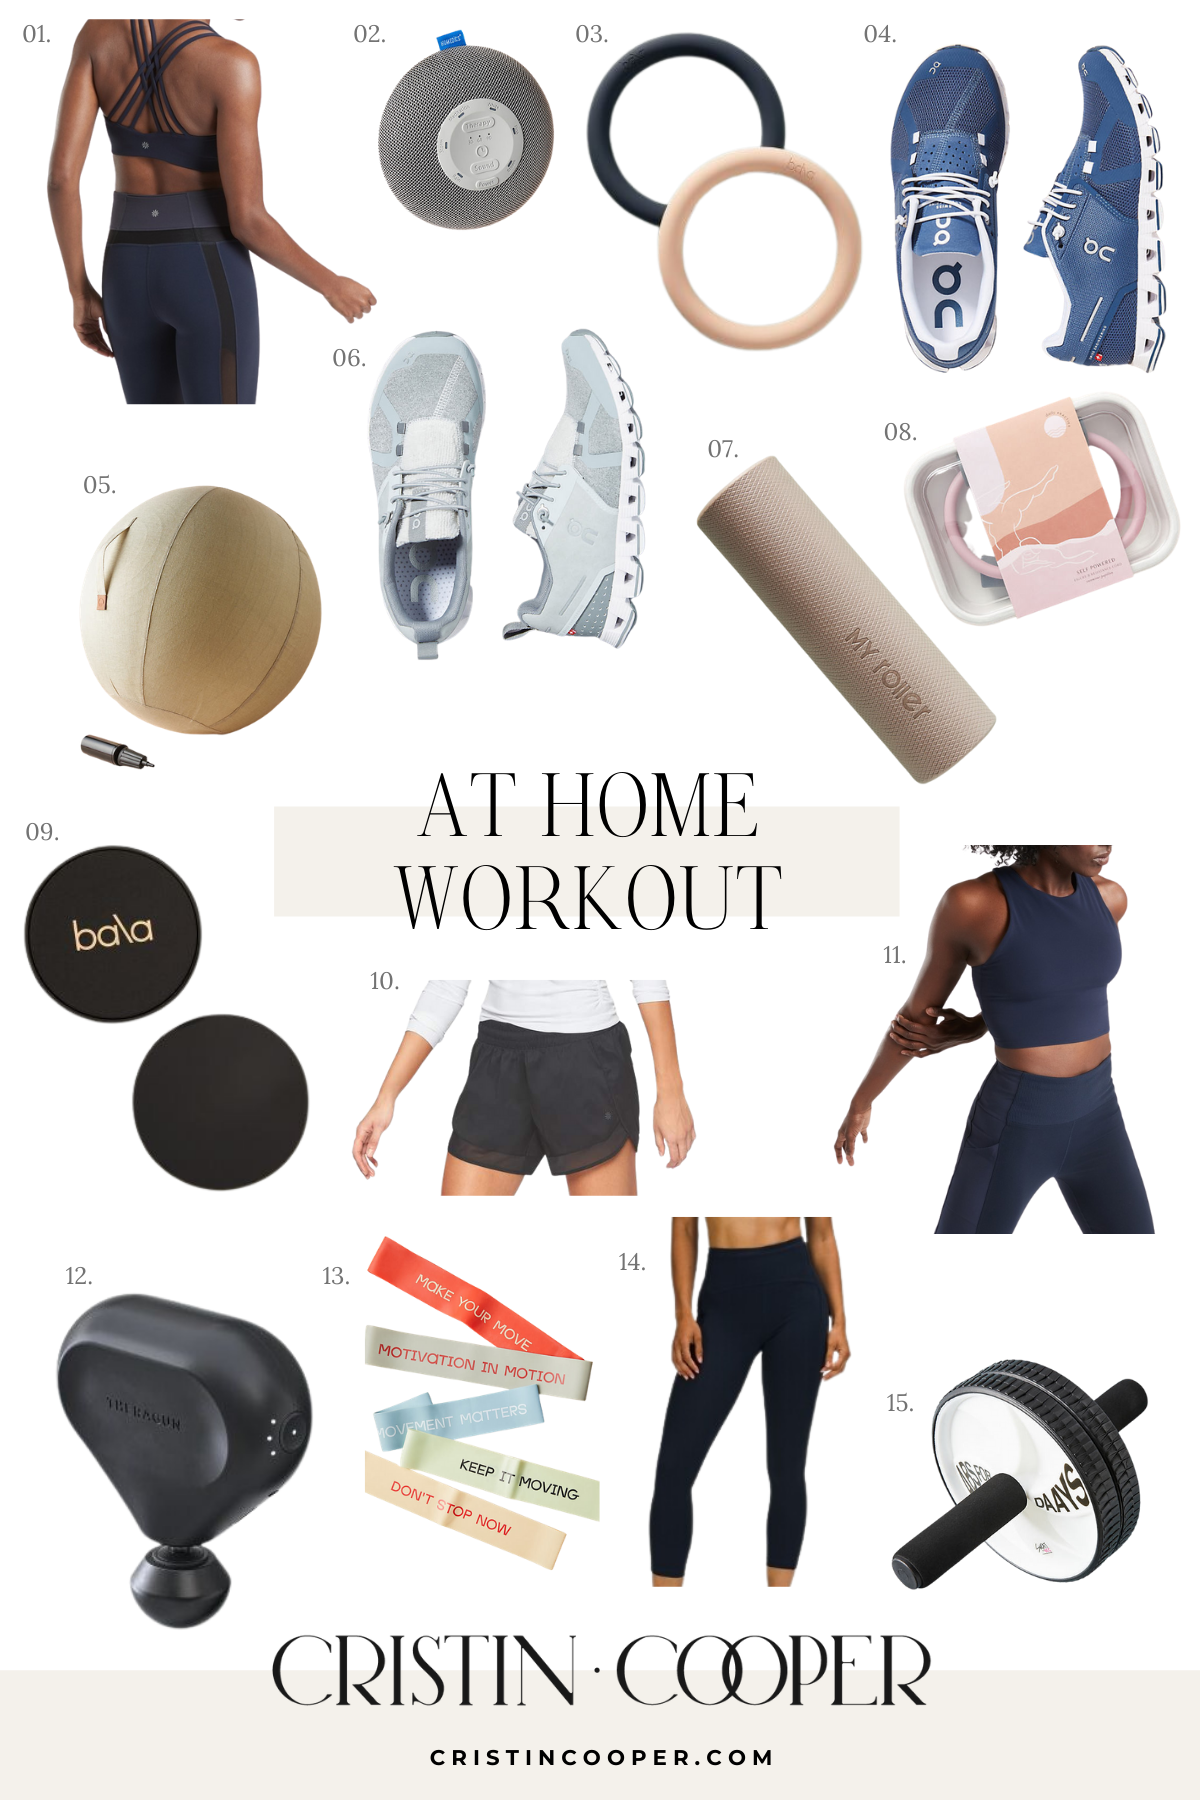 At home workout clothes and gear to use with fitness apps.